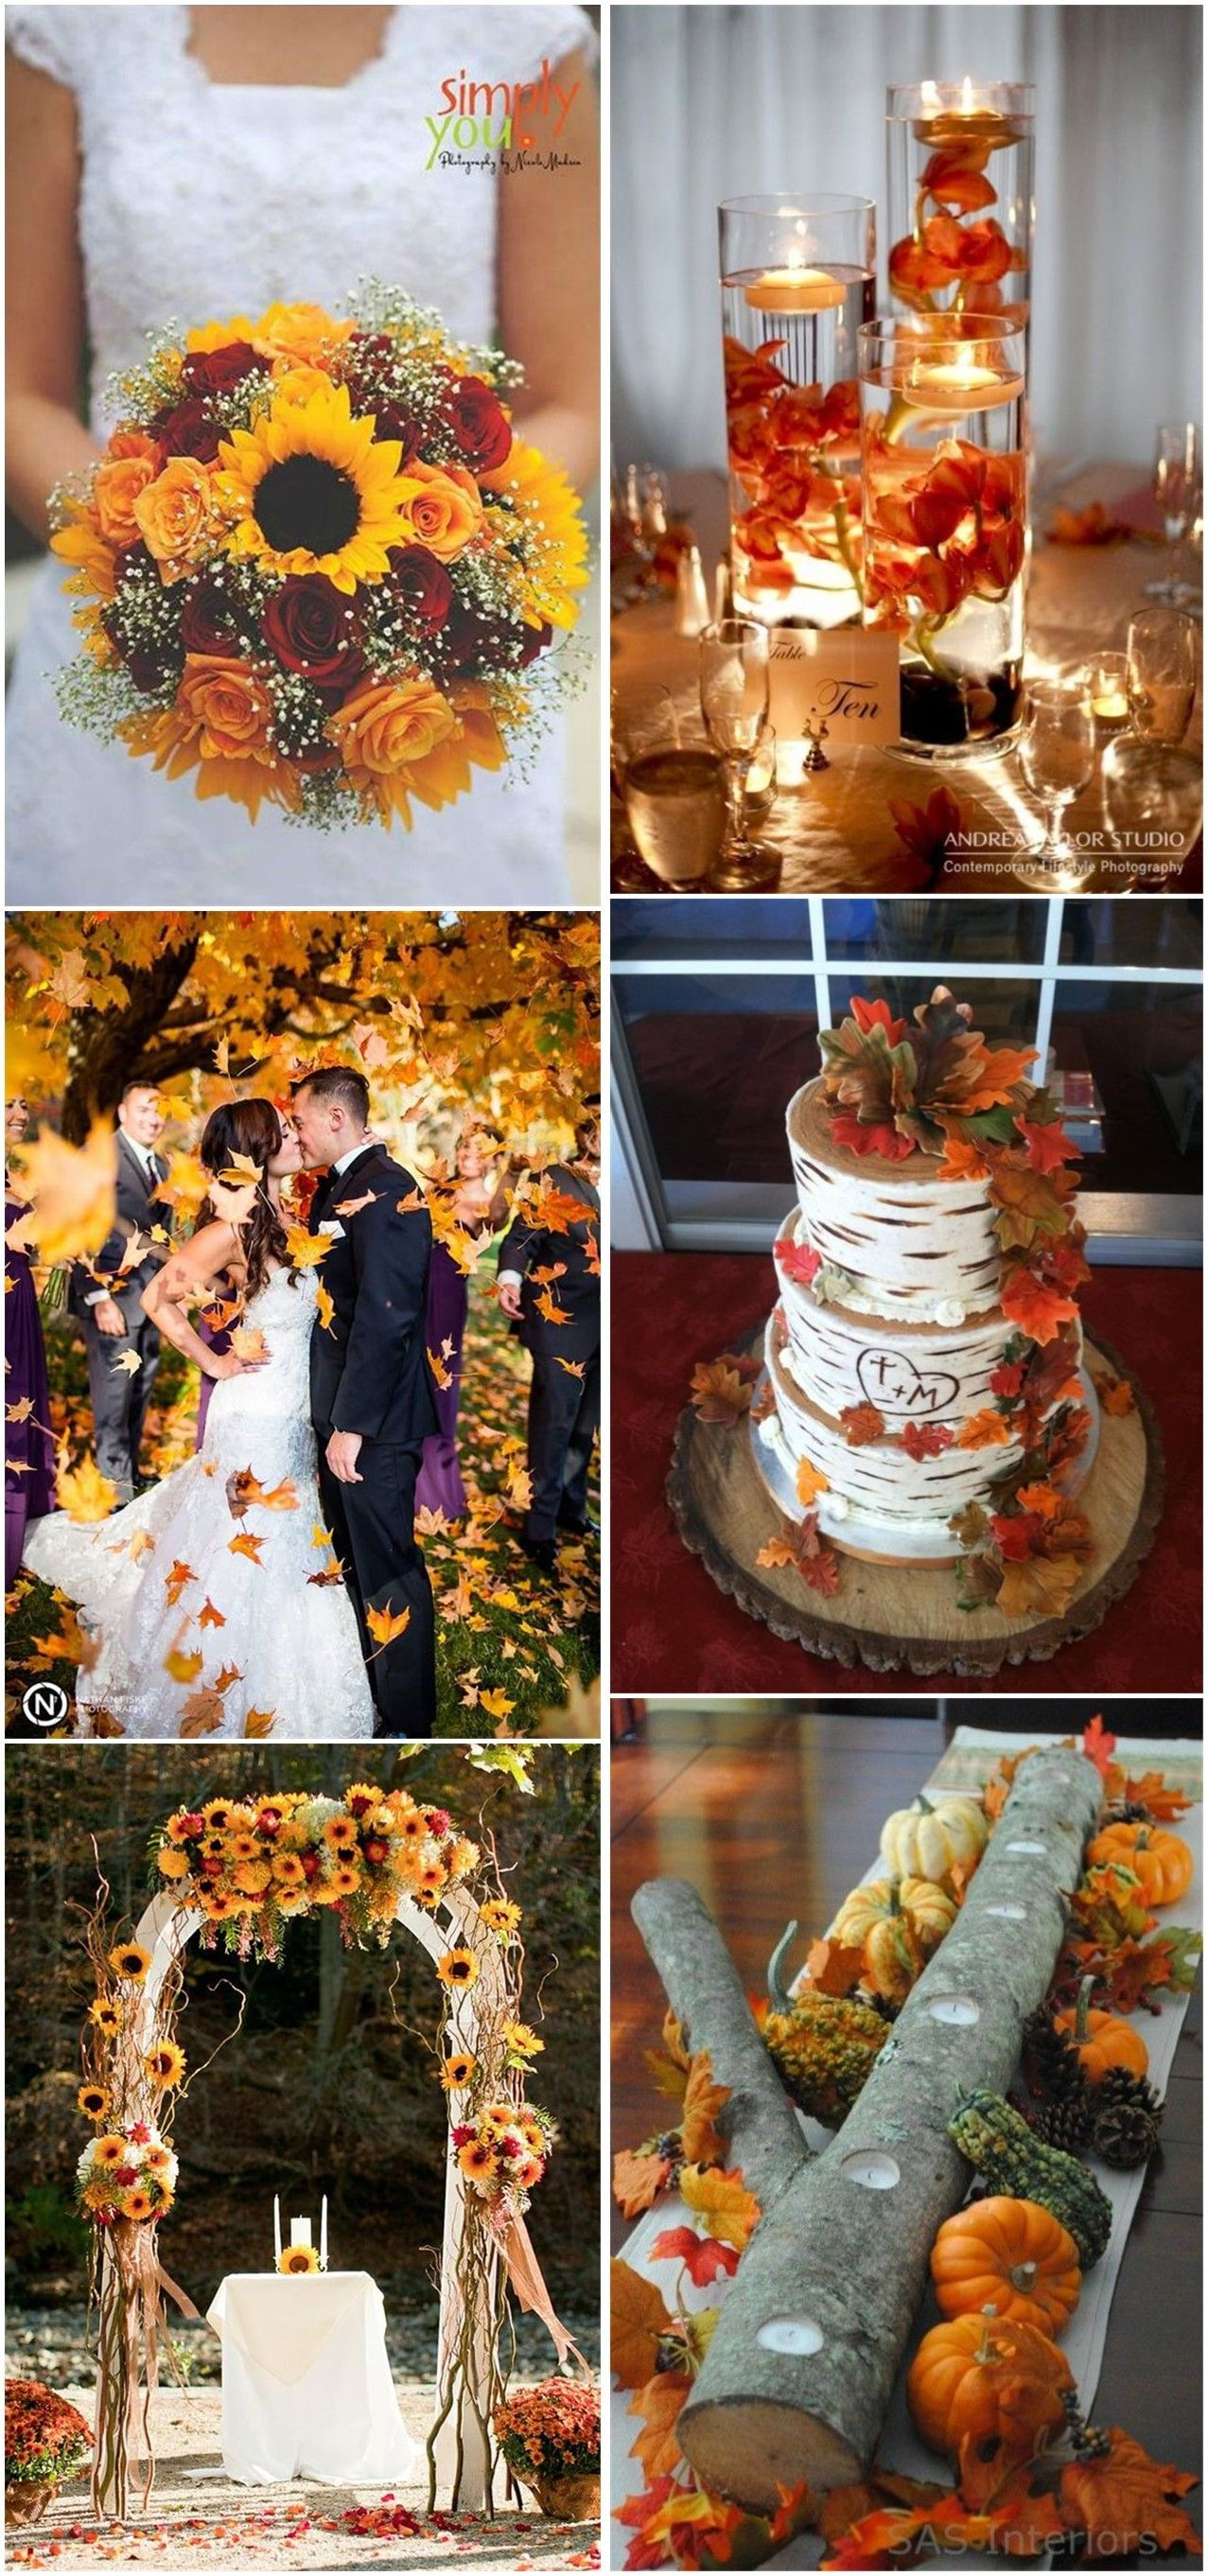 23 best fall wedding ideas in 2018 pinterest weddings wedding fall weddings 23 best fall wedding ideas in 2017 see more httpweddinginclude201703best fall wedding ideas junglespirit Gallery